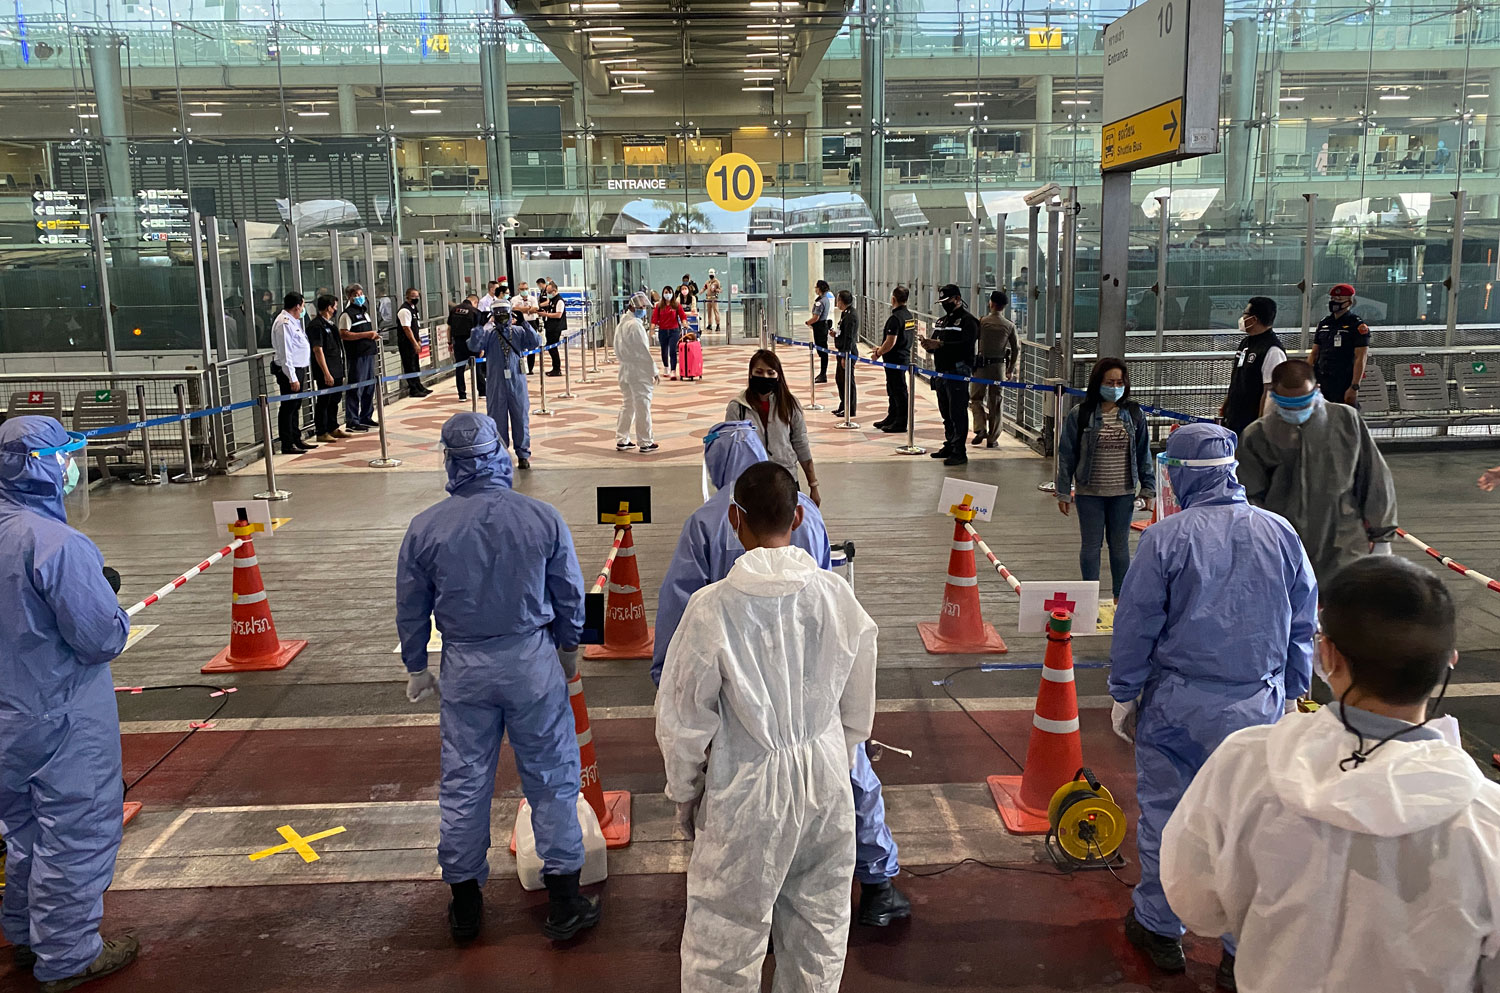 Thais returning from India arrive at Suvarnabhumi airport on Friday afternoon. The government on Saturday reported two new Covid-19 cases, both returnees from Russia and Kuwait, with no new deaths. (Photo: Sutthiwit Chayutworakan)